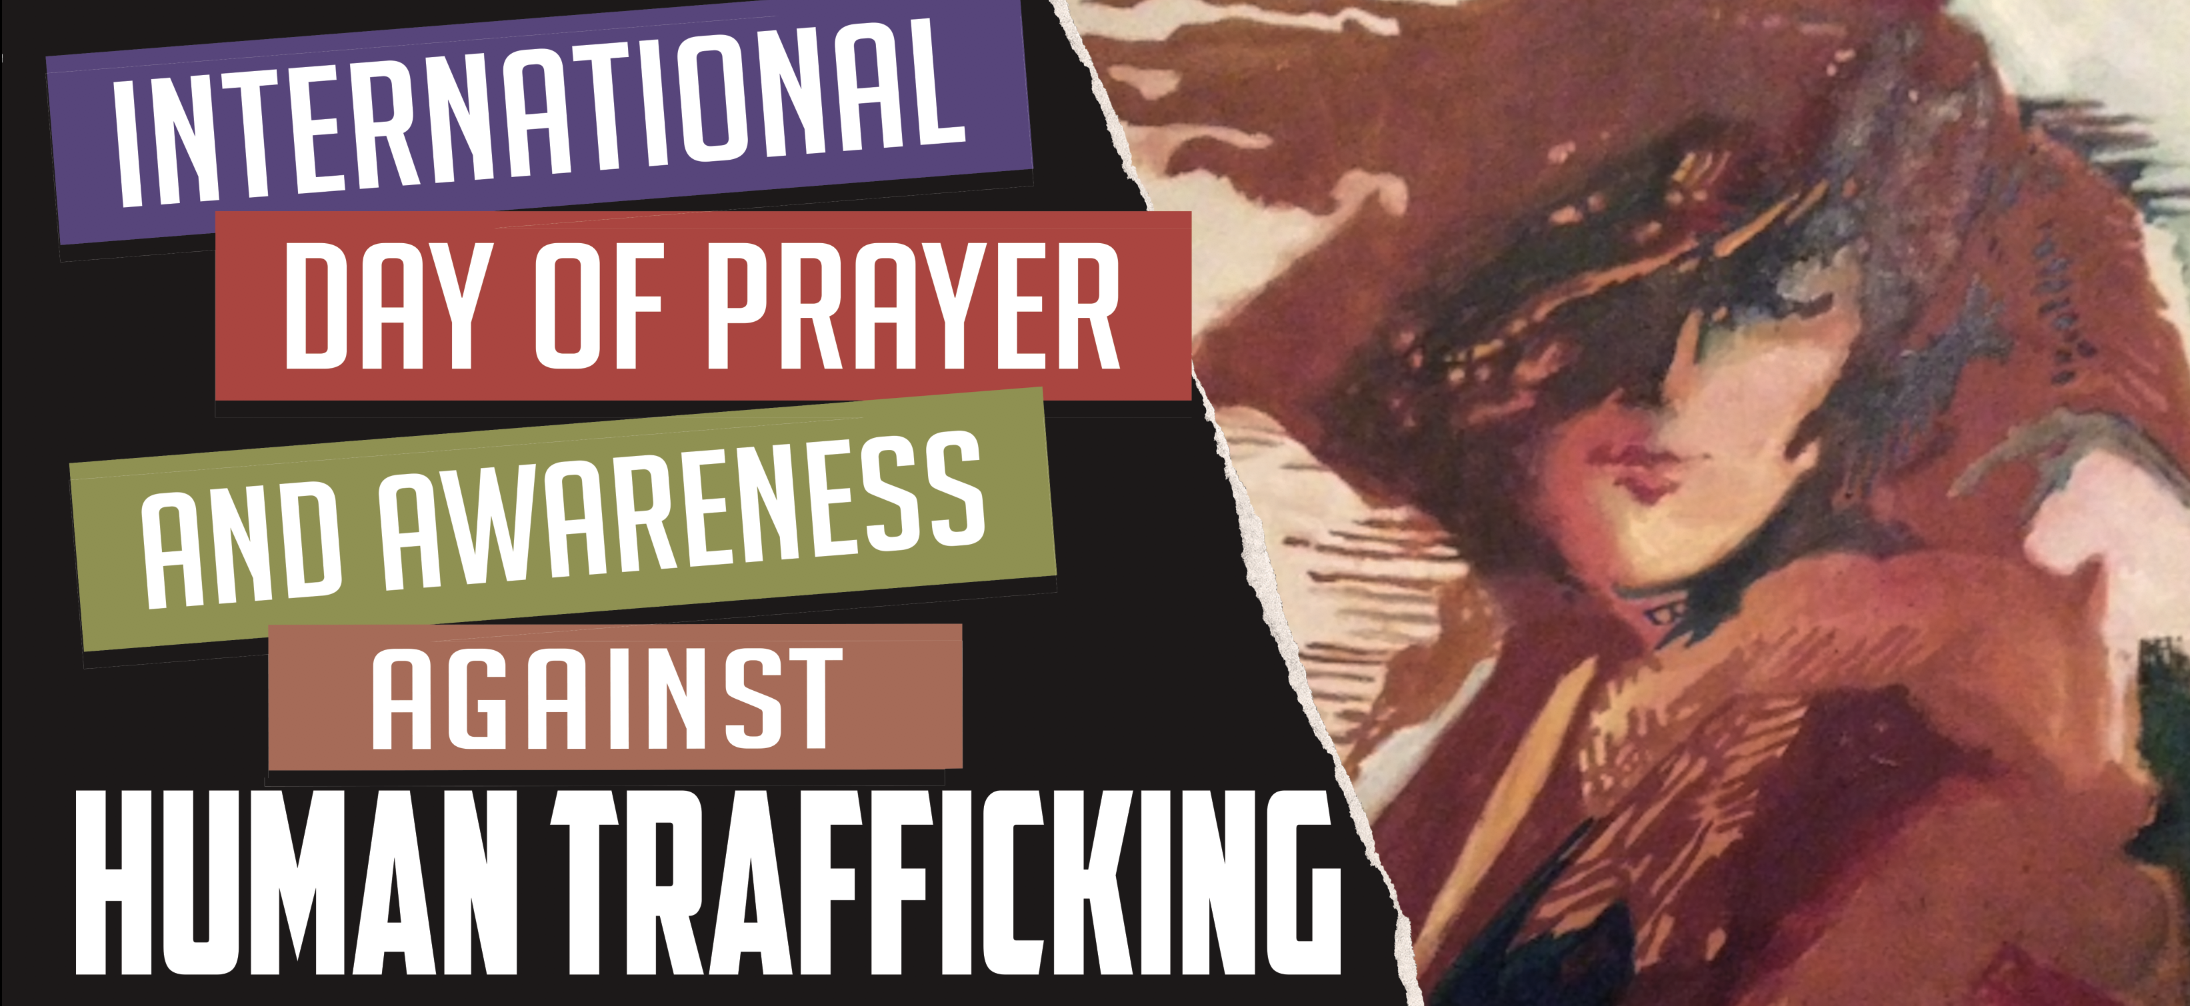 International Day of Prayer for Human Trafficking artwork